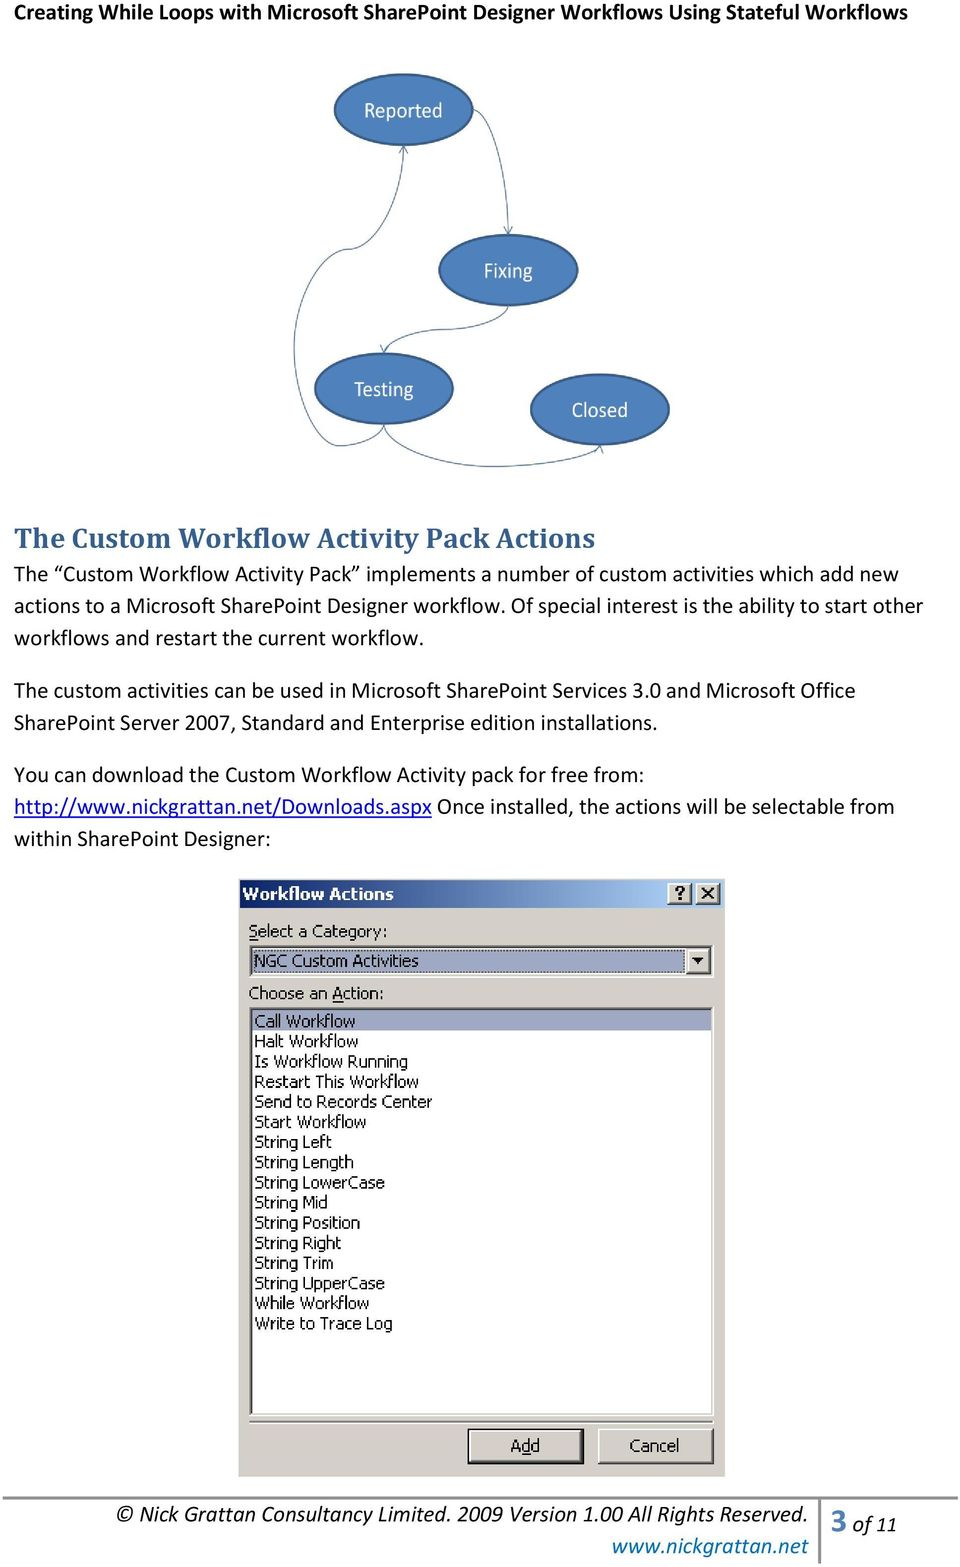 The custom activities can be used in Microsoft SharePoint Services 3.